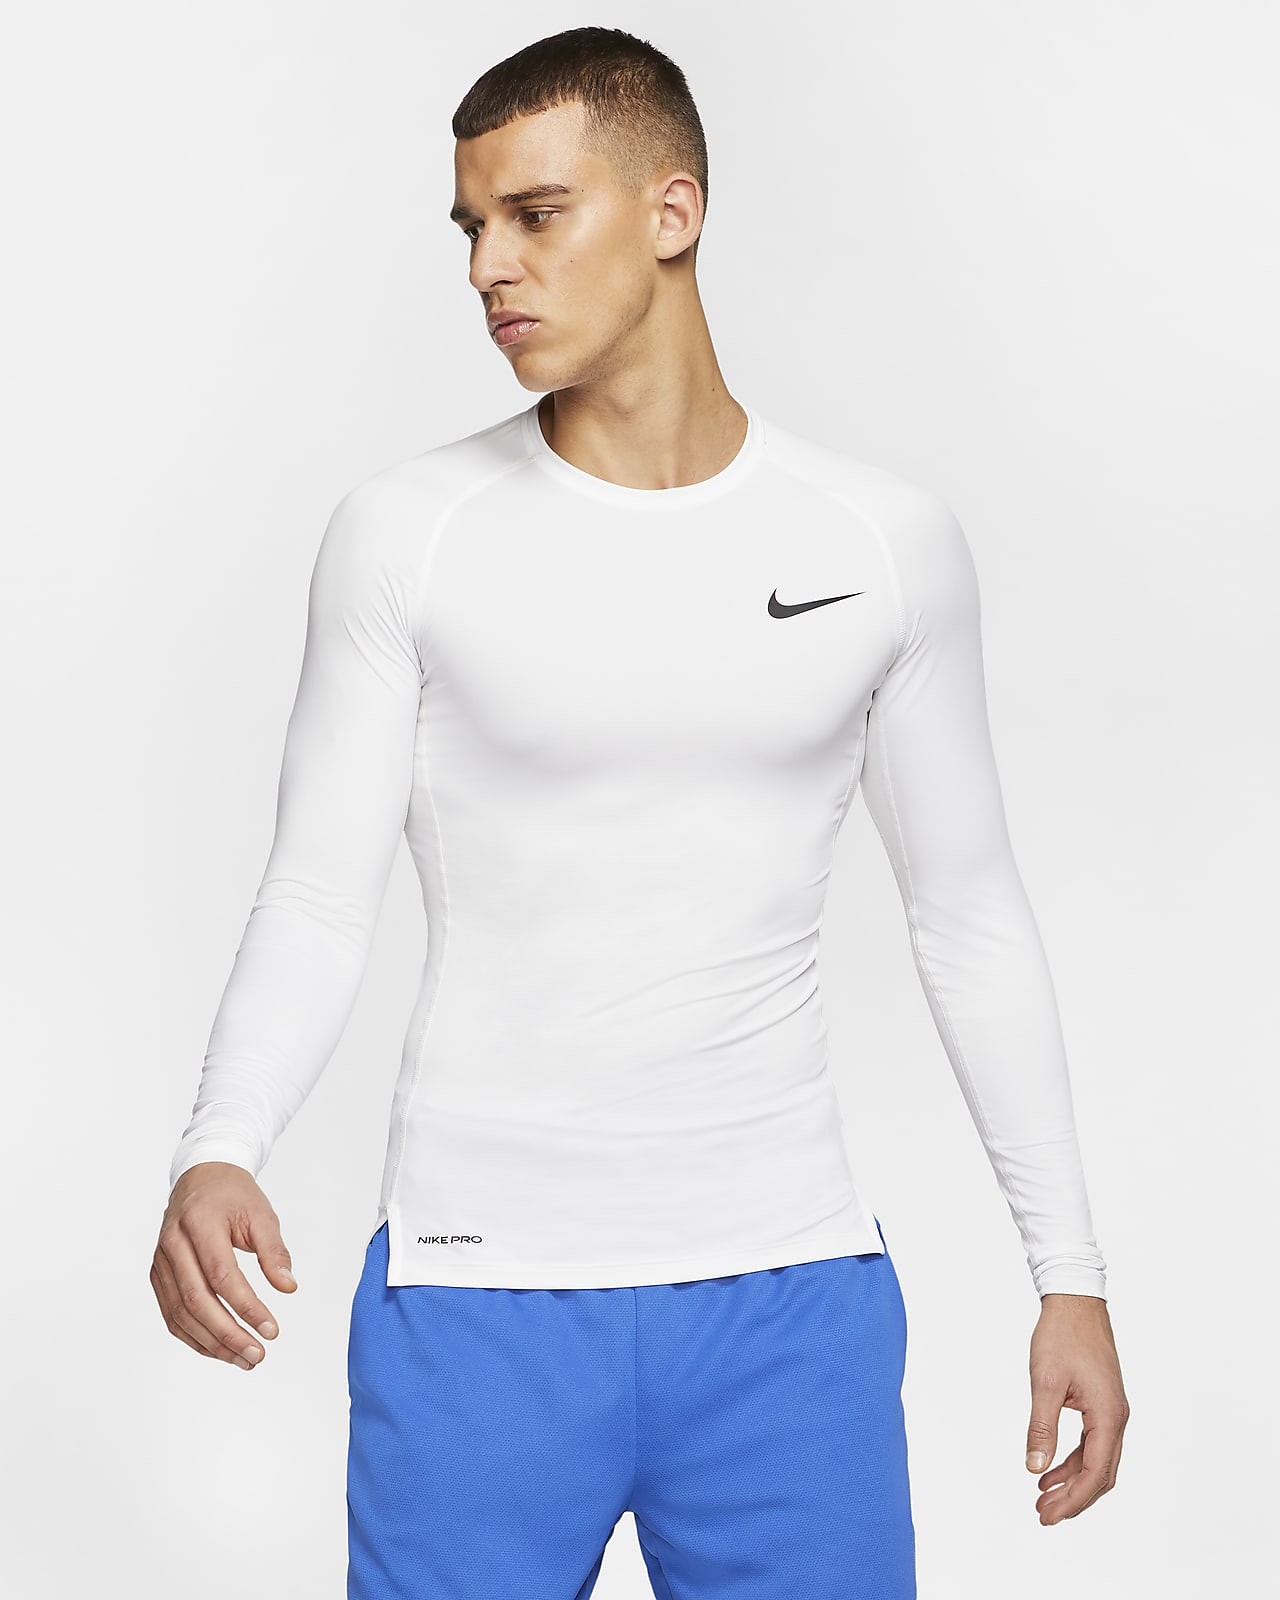 Nike Men/'s pro Dry Fit Compression Long Sleeve Functional Shirt White